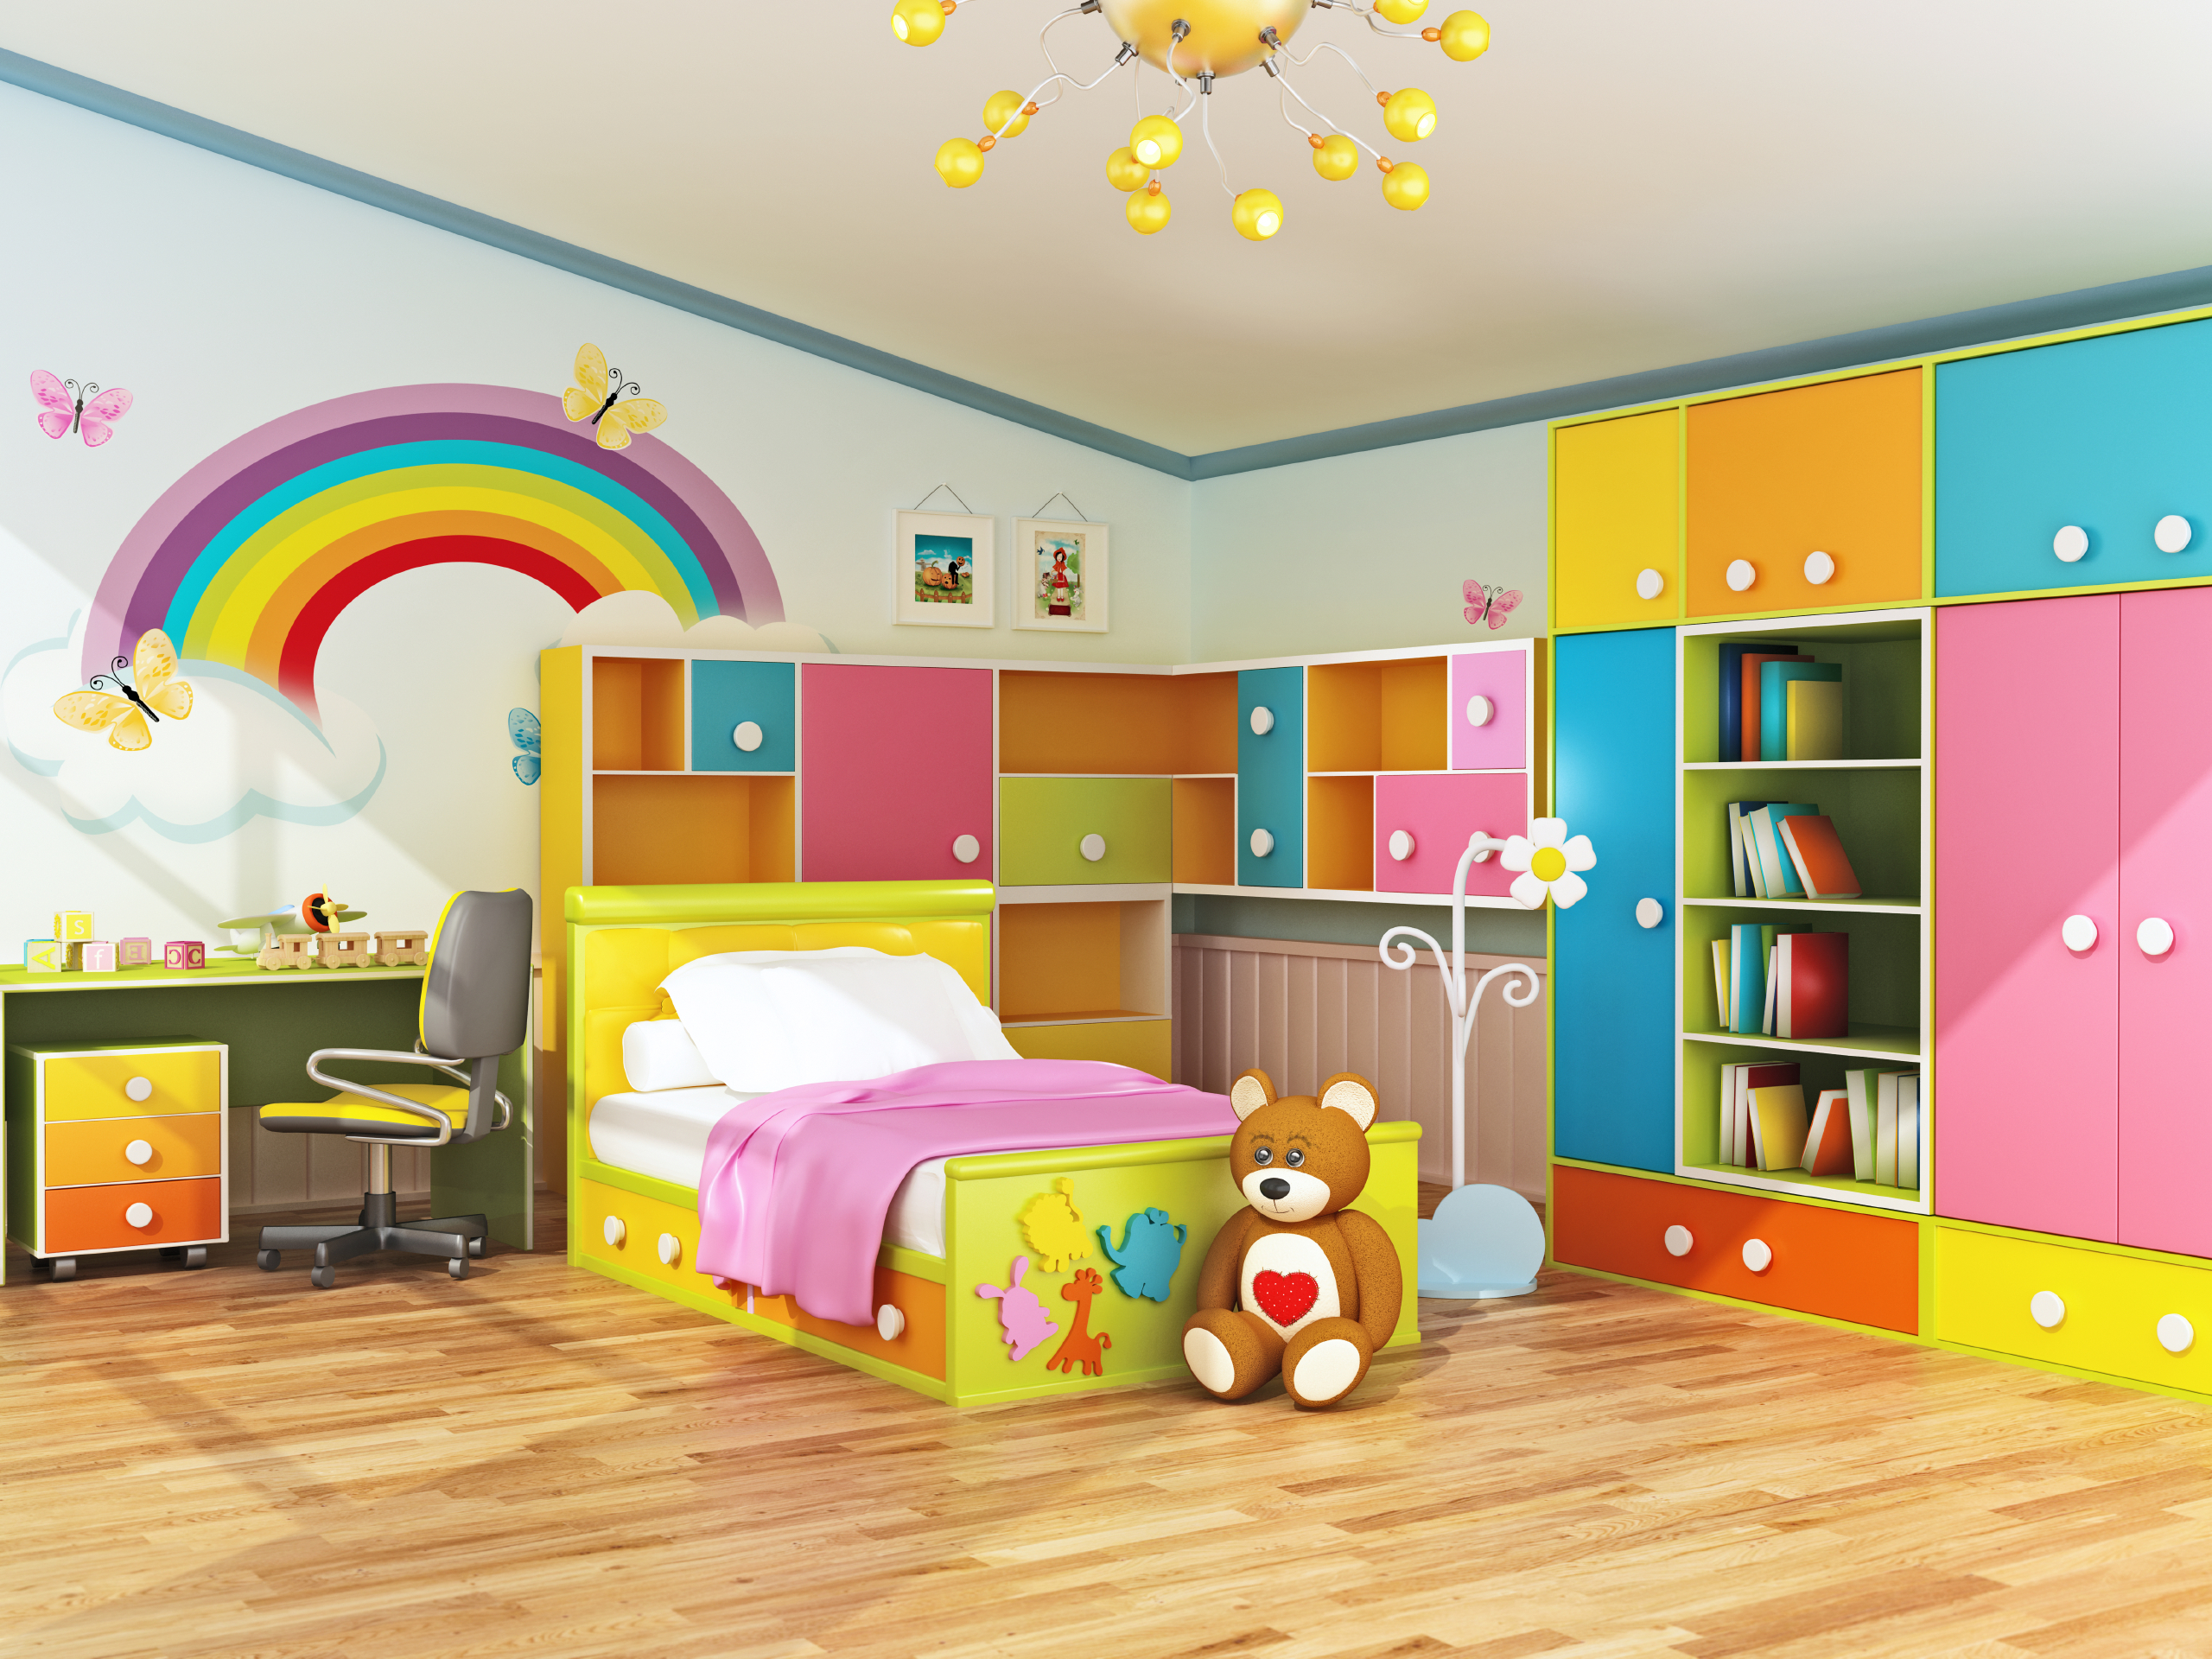 Plan ahead when decorating kids 39 bedrooms rismedia 39 s for Children bedroom designs girls